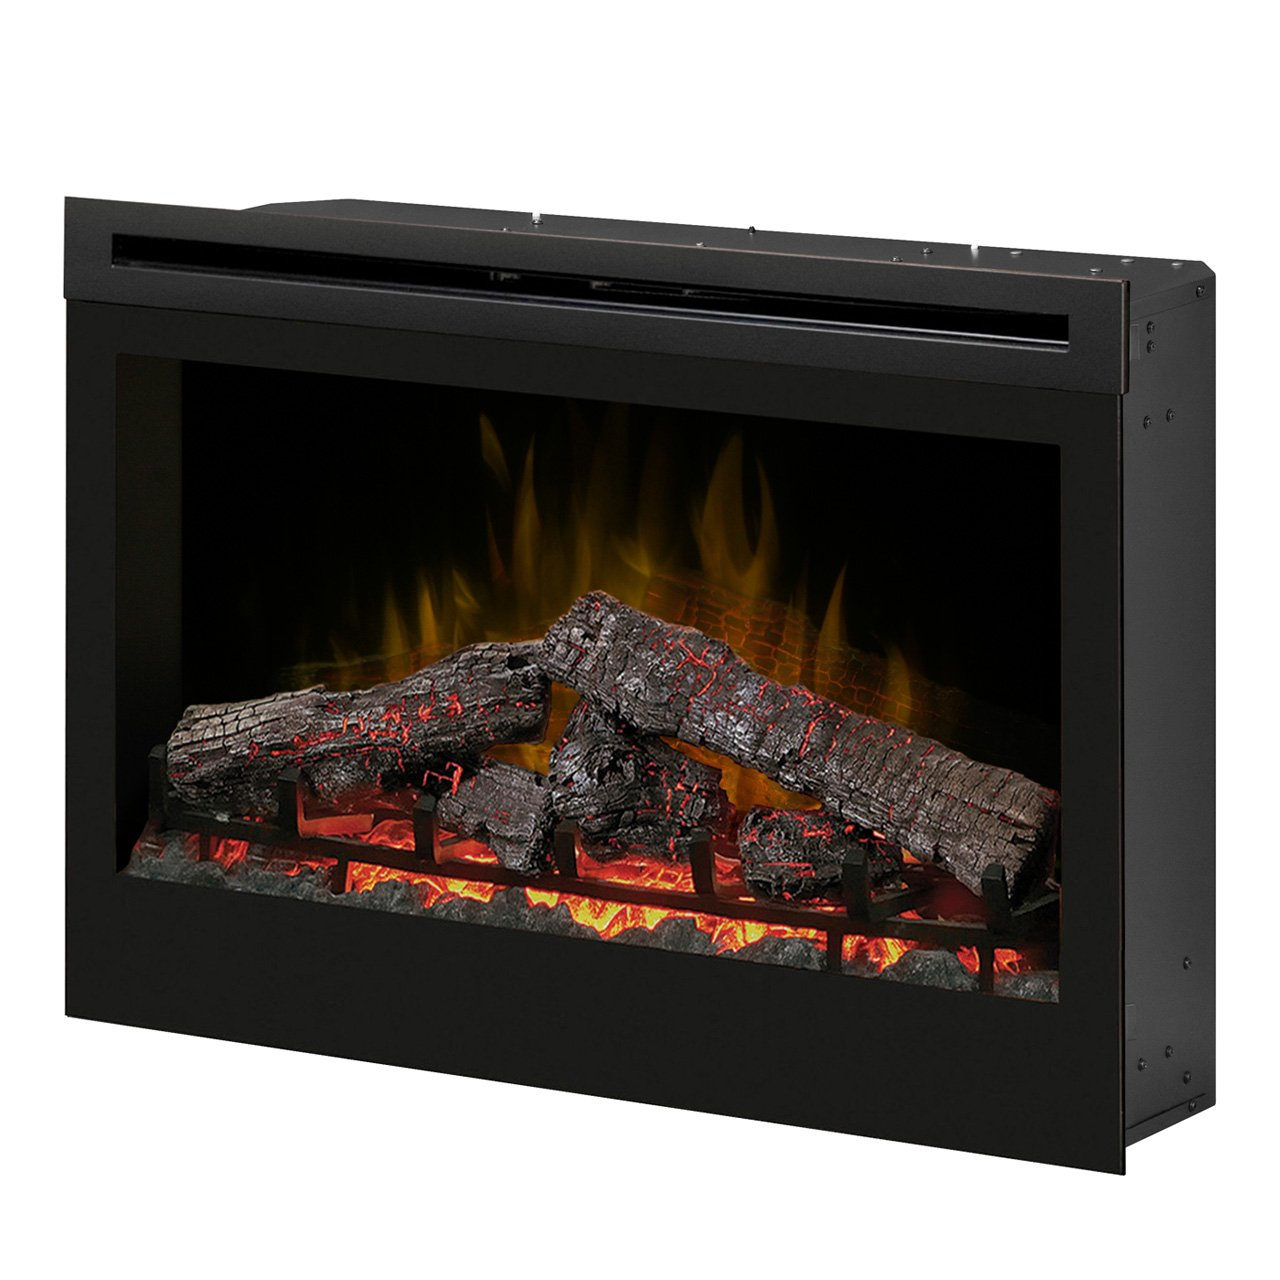 Amazon Electric Fireplace Inspirational Dimplex Df3033st 33 Inch Self Trimming Electric Fireplace Insert